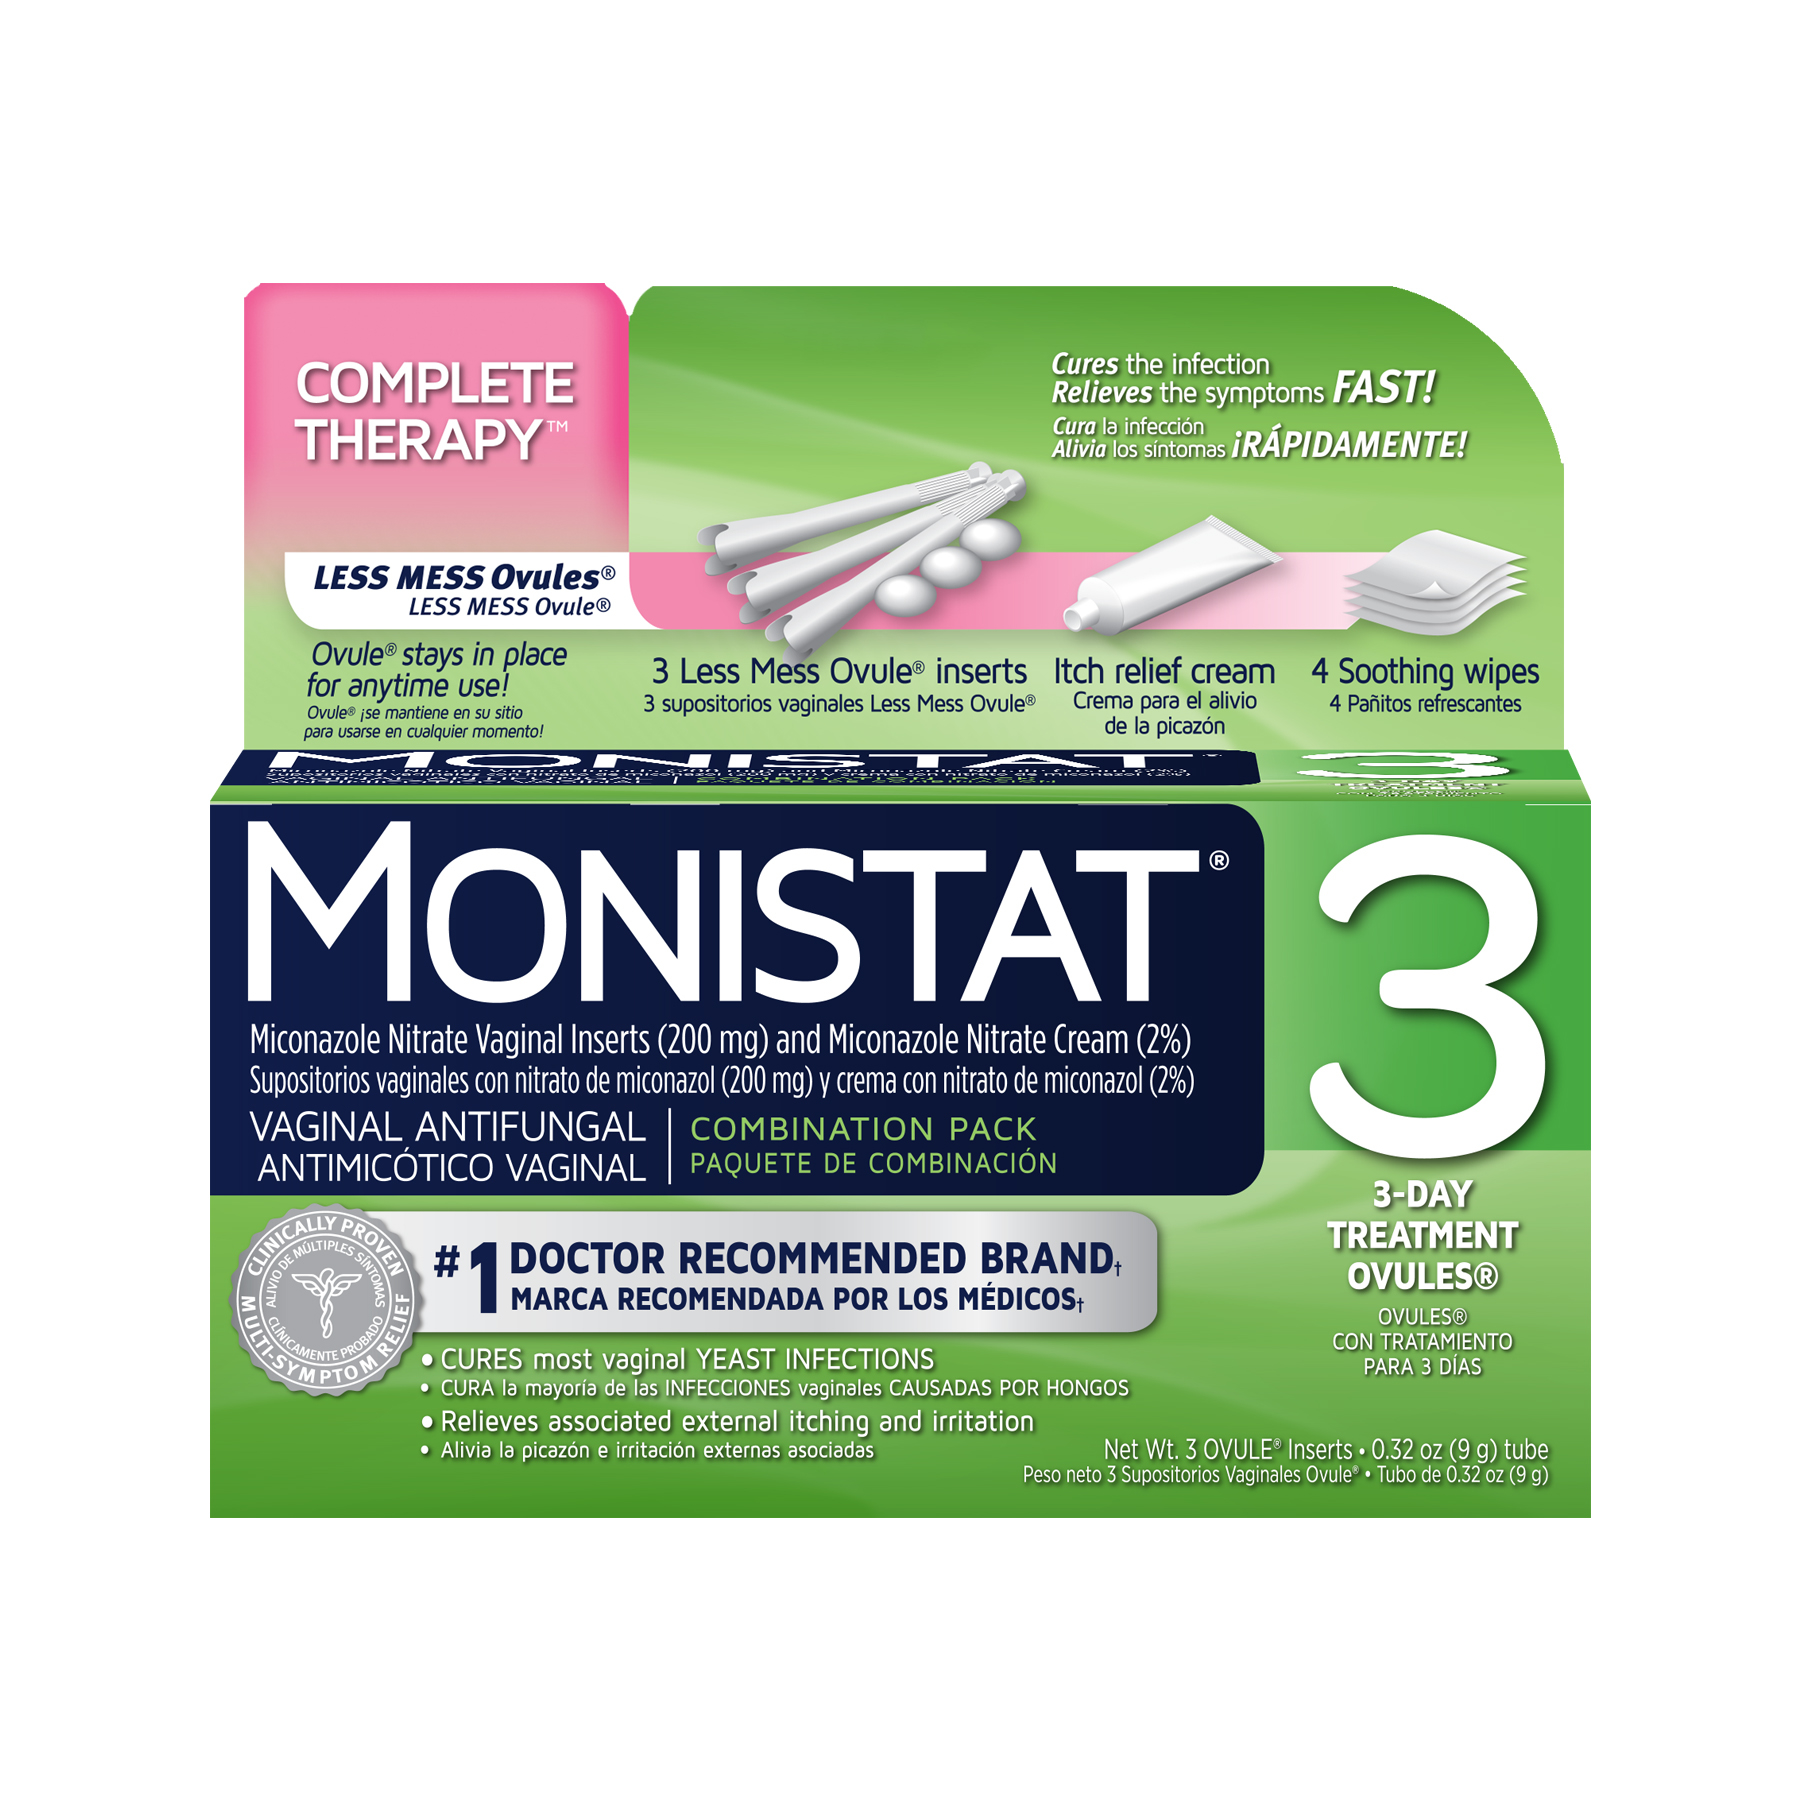 Monistat 3 Vaginal Antifungal 3-Day Treatment Ovules Complete Therapy